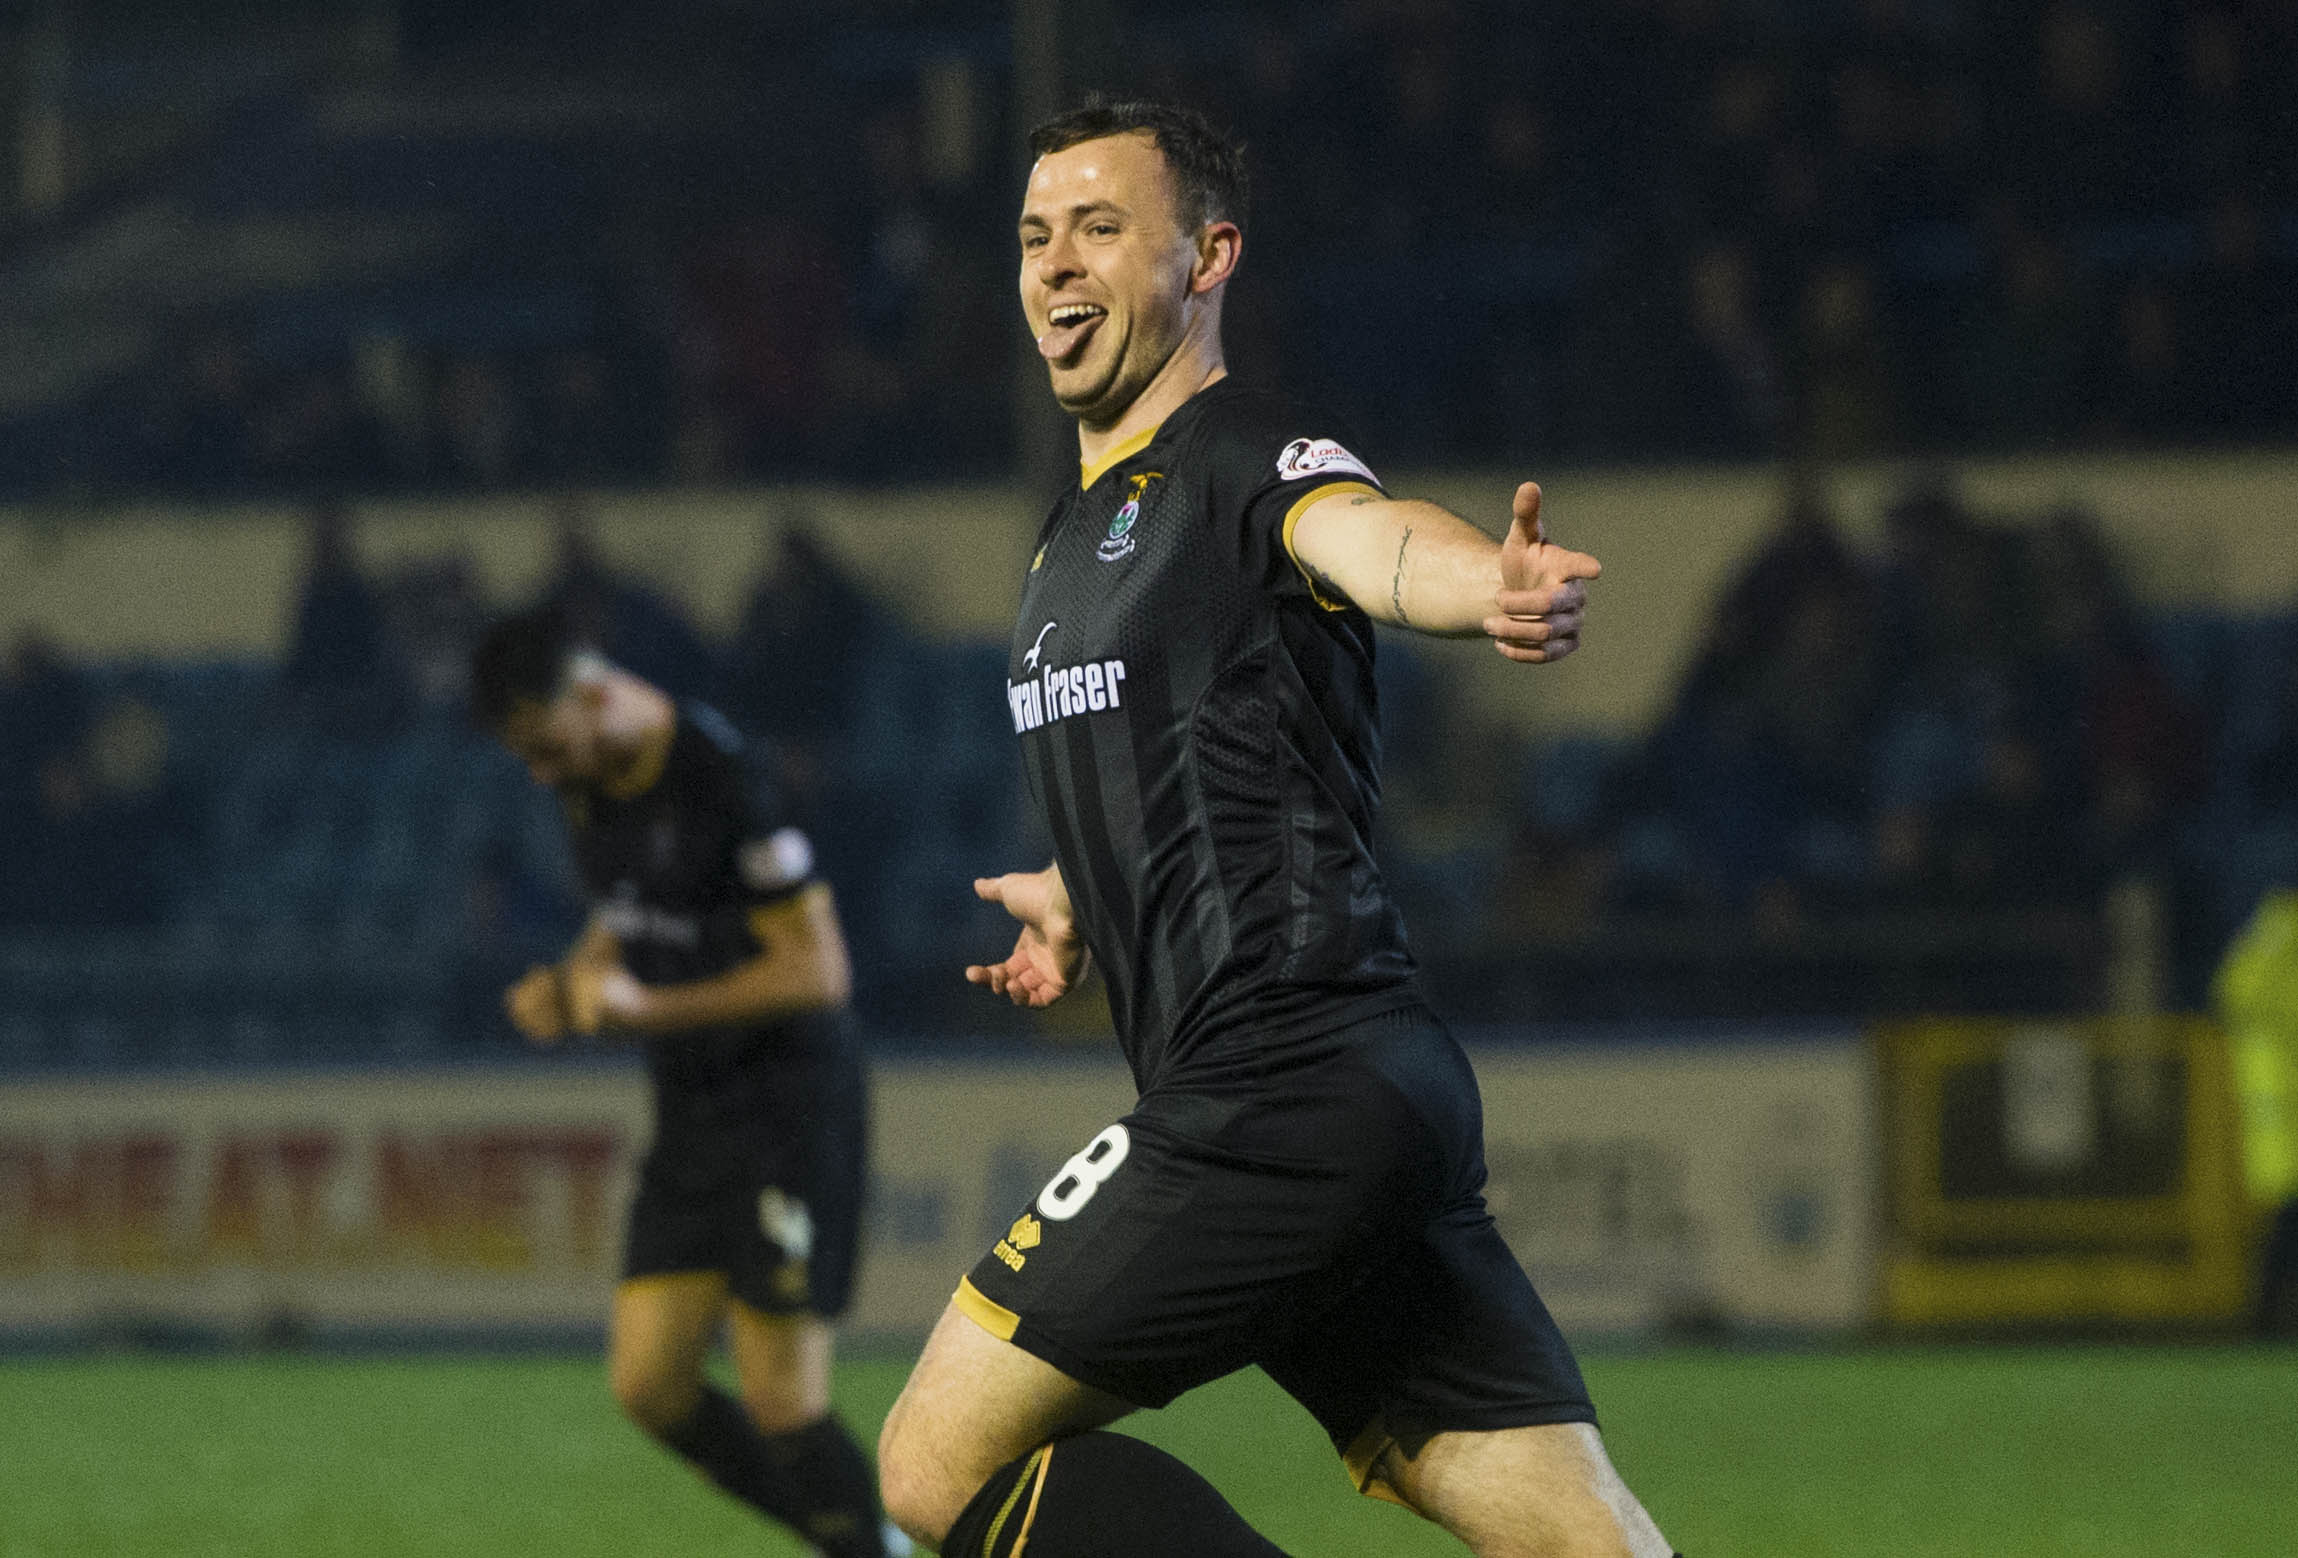 Darren McCauley celebrates a goal against Morton.